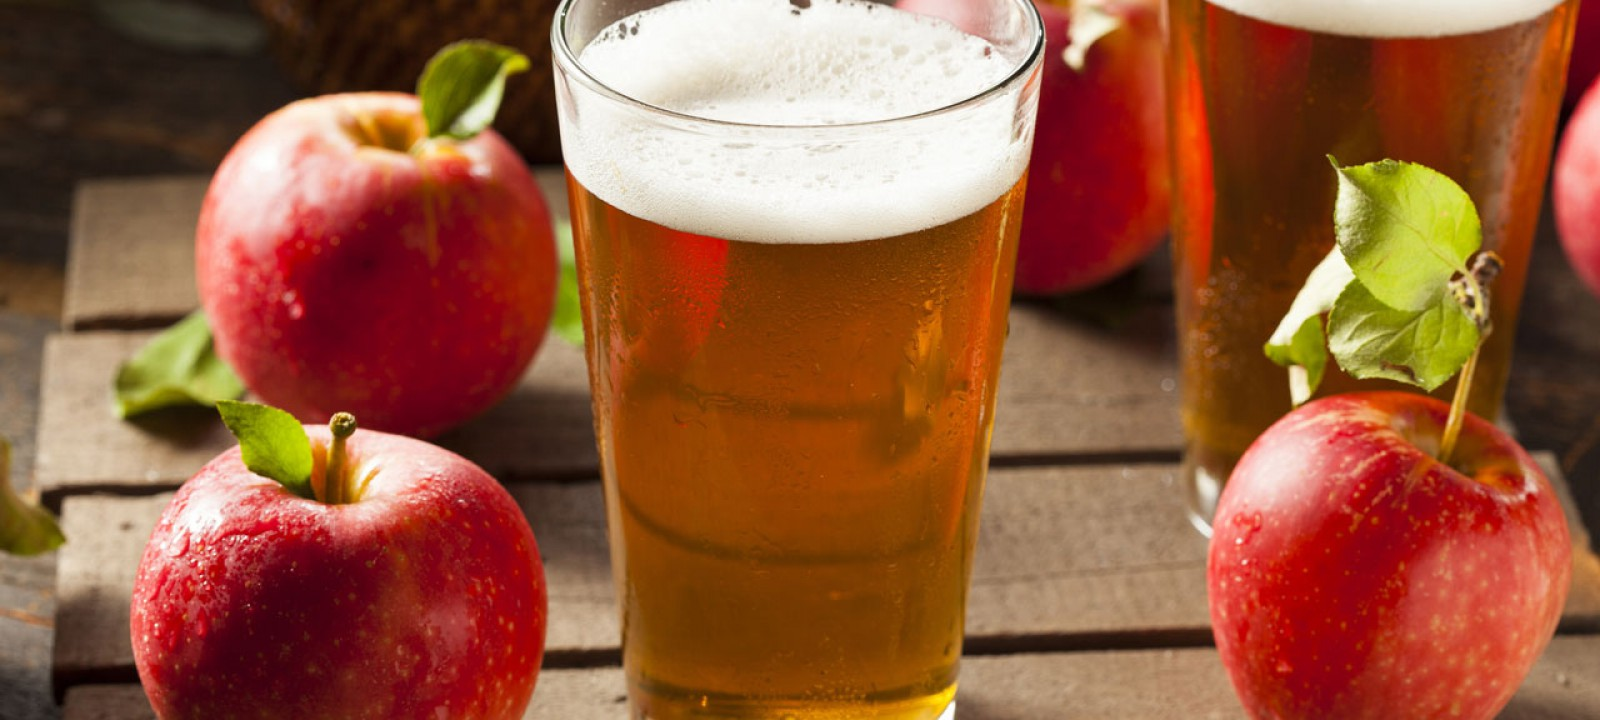 1280x720_apple_cider